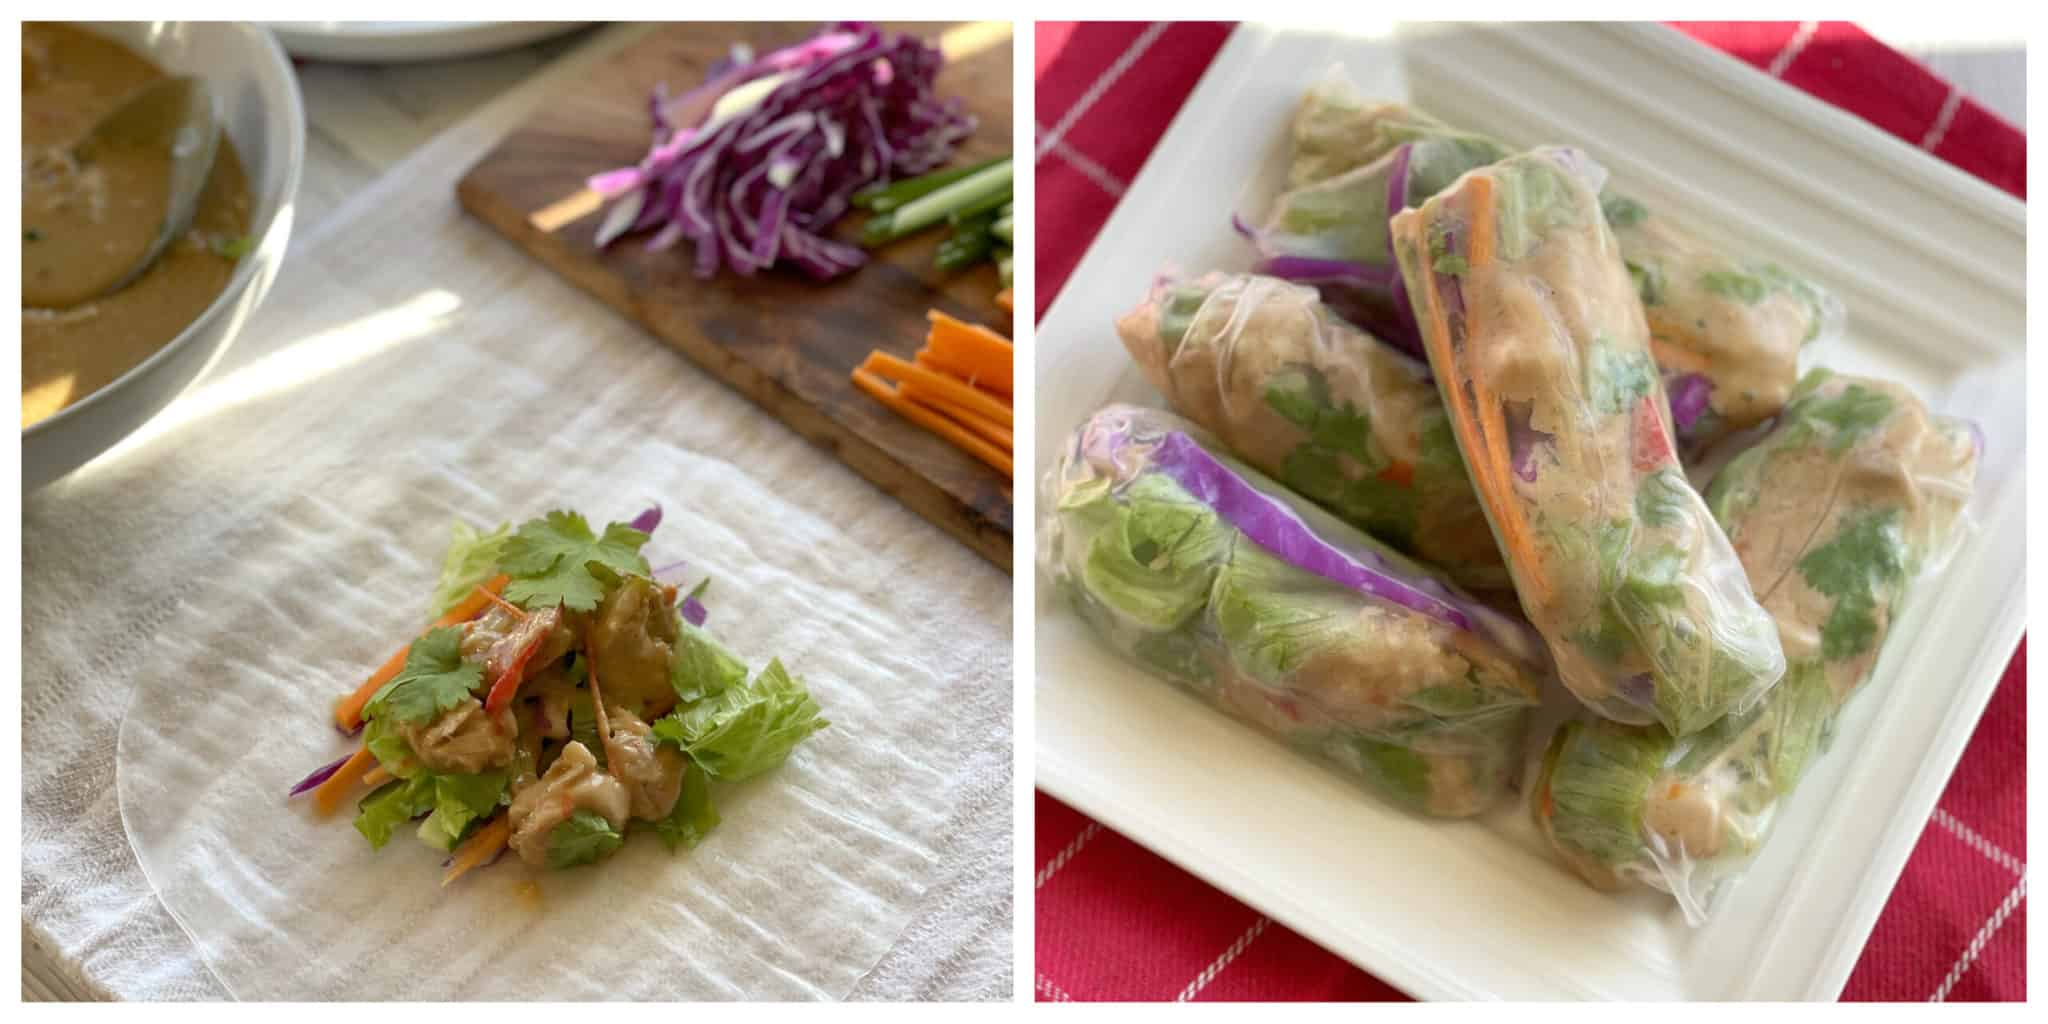 Rice Paper rolls using Satay Chicken and fresh salad ingredients